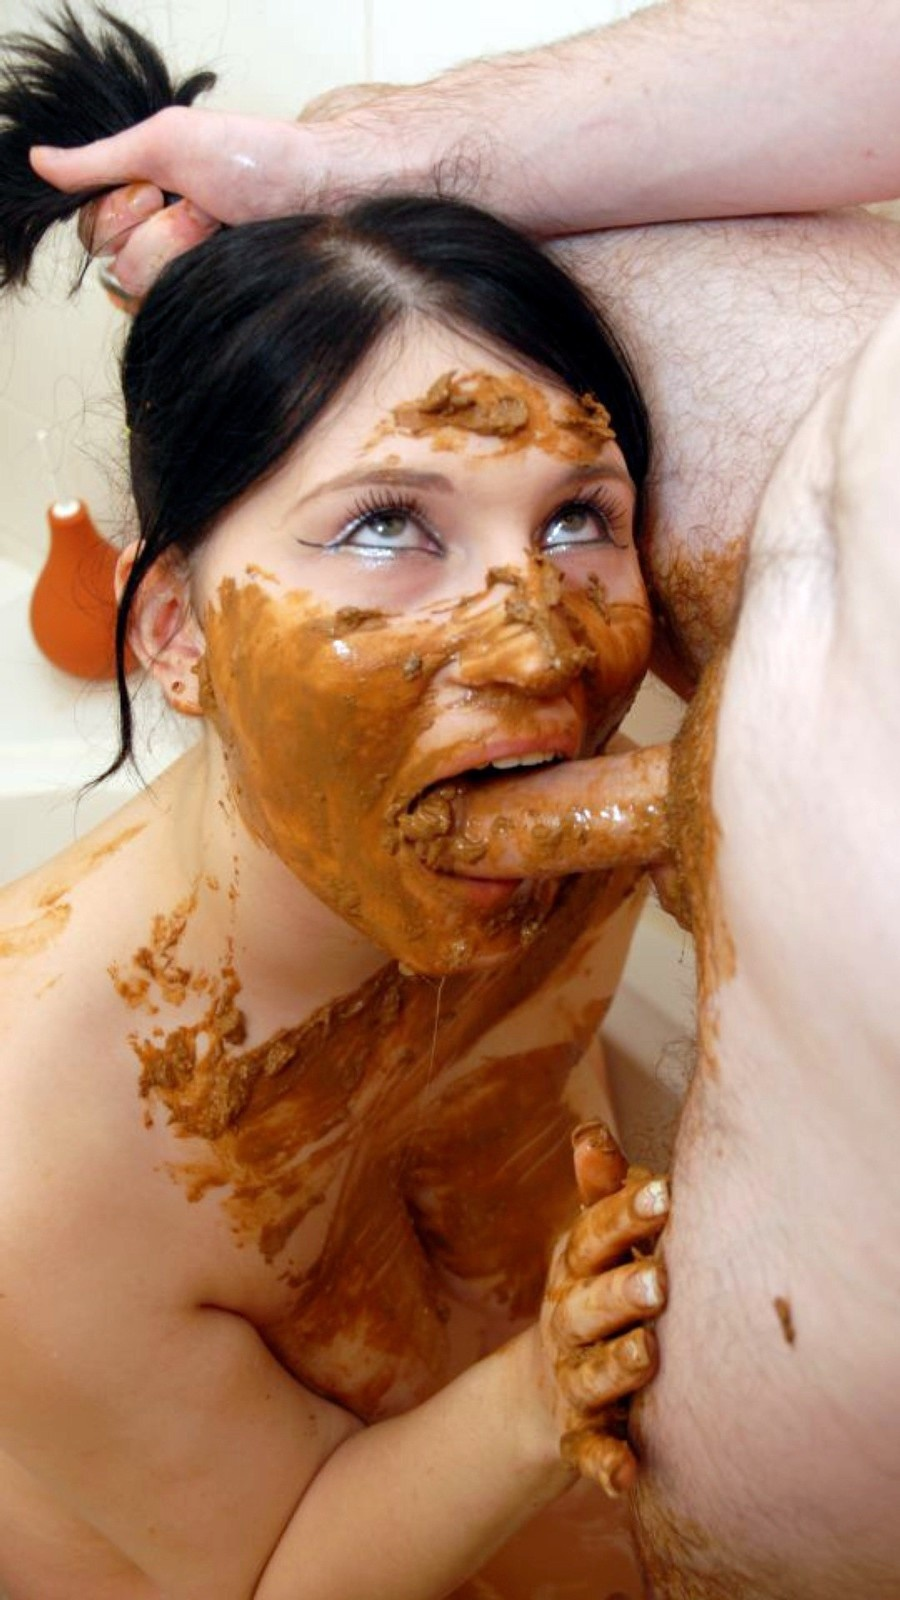 Watch cumshot on shit face porn and sex pics